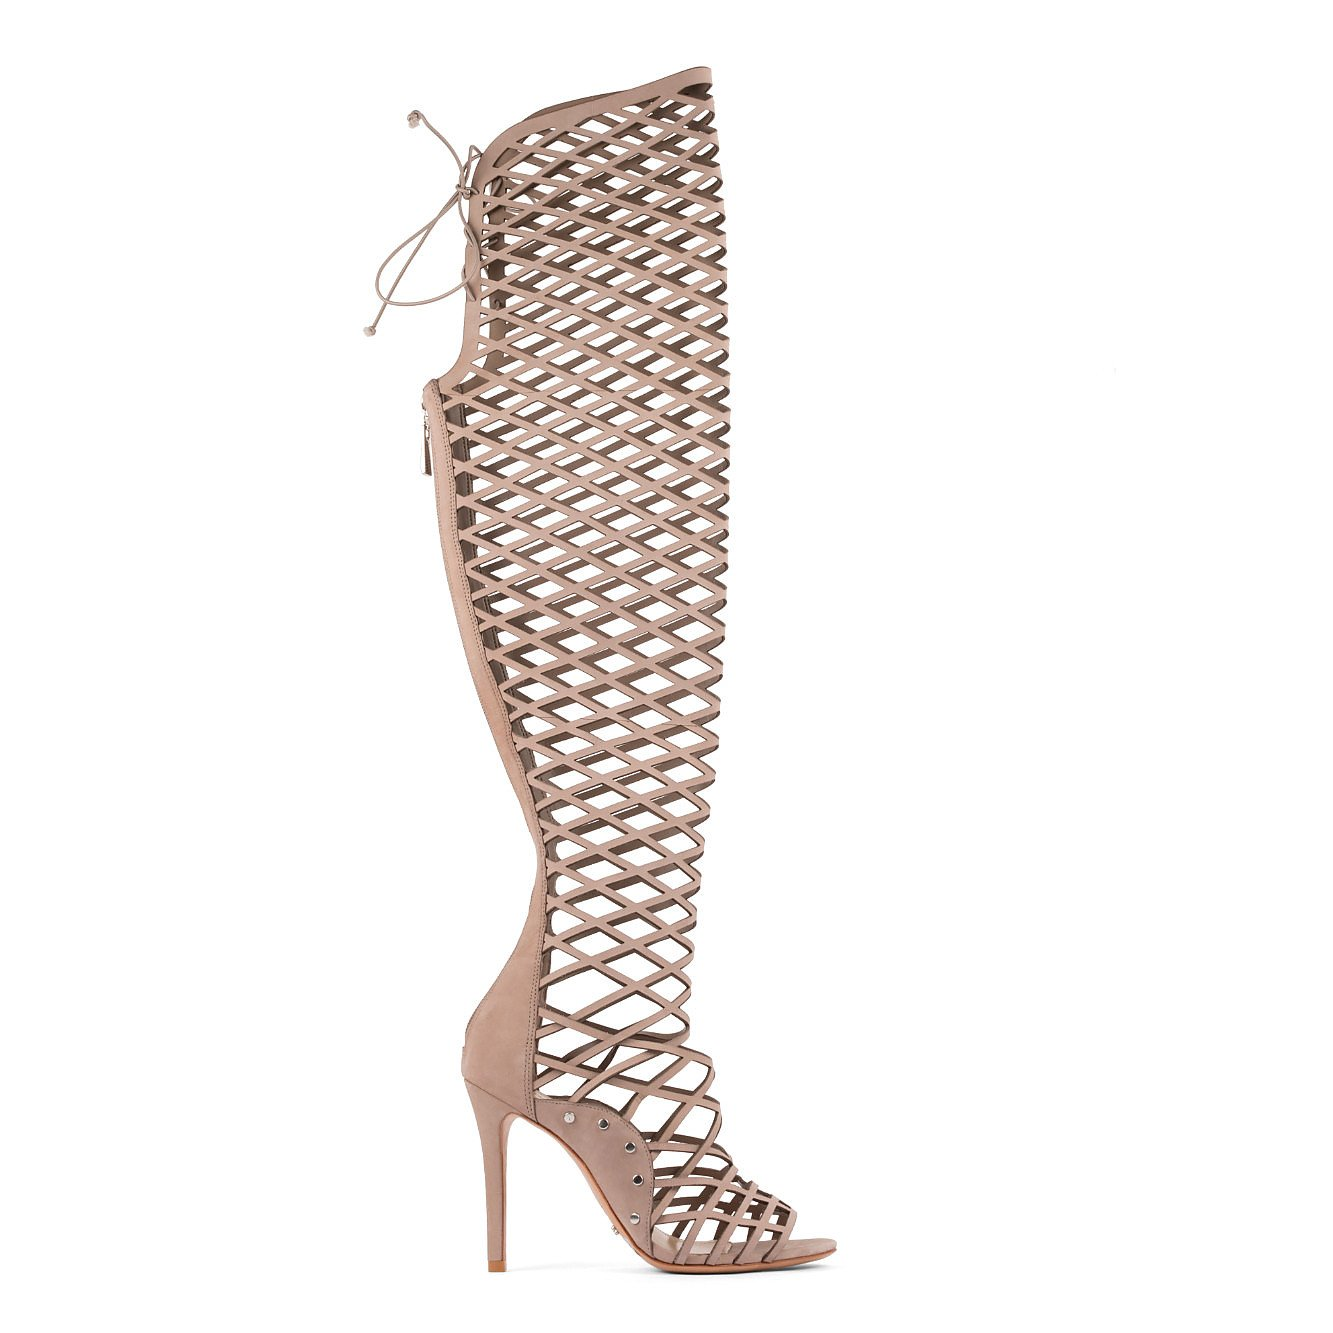 Schutz Karlyanna Caged Knee-High Heels